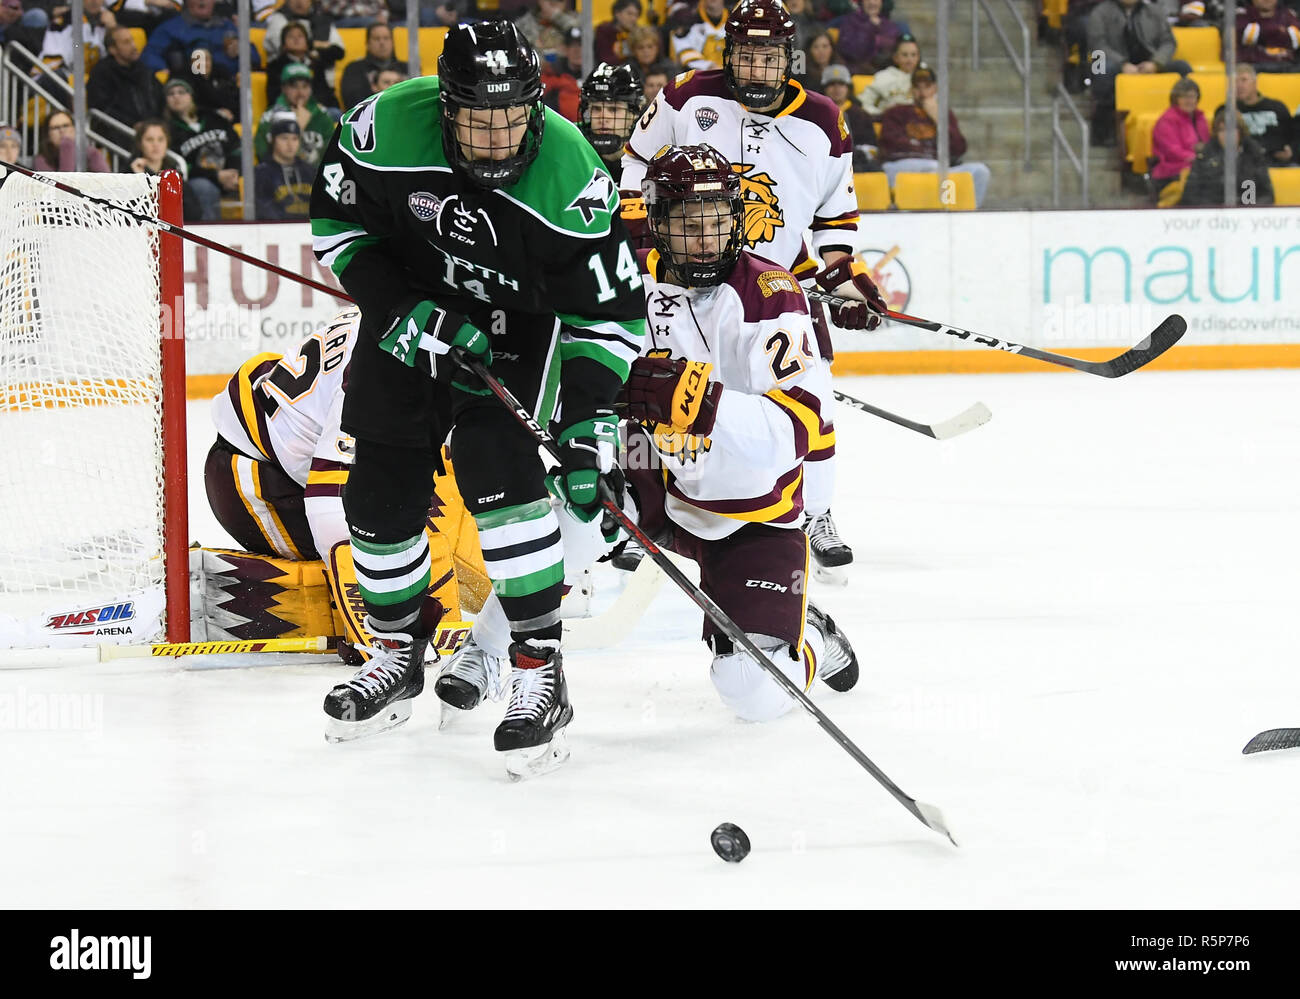 December 1, 2018 North Dakota Fighting Hawks forward Jasper Weatherby (14) and Minnesota-Duluth Bulldogs defenseman Mikey Anderson (24) race for the puck during a NCAA men's ice hockey game between the University of North Dakota Fighting Hawks and the Minnesota Duluth Bulldogs at Amsoil Arena in Duluth, MN. North Dakota won 2-1. Photo by Russell Hons/CSM - Stock Image